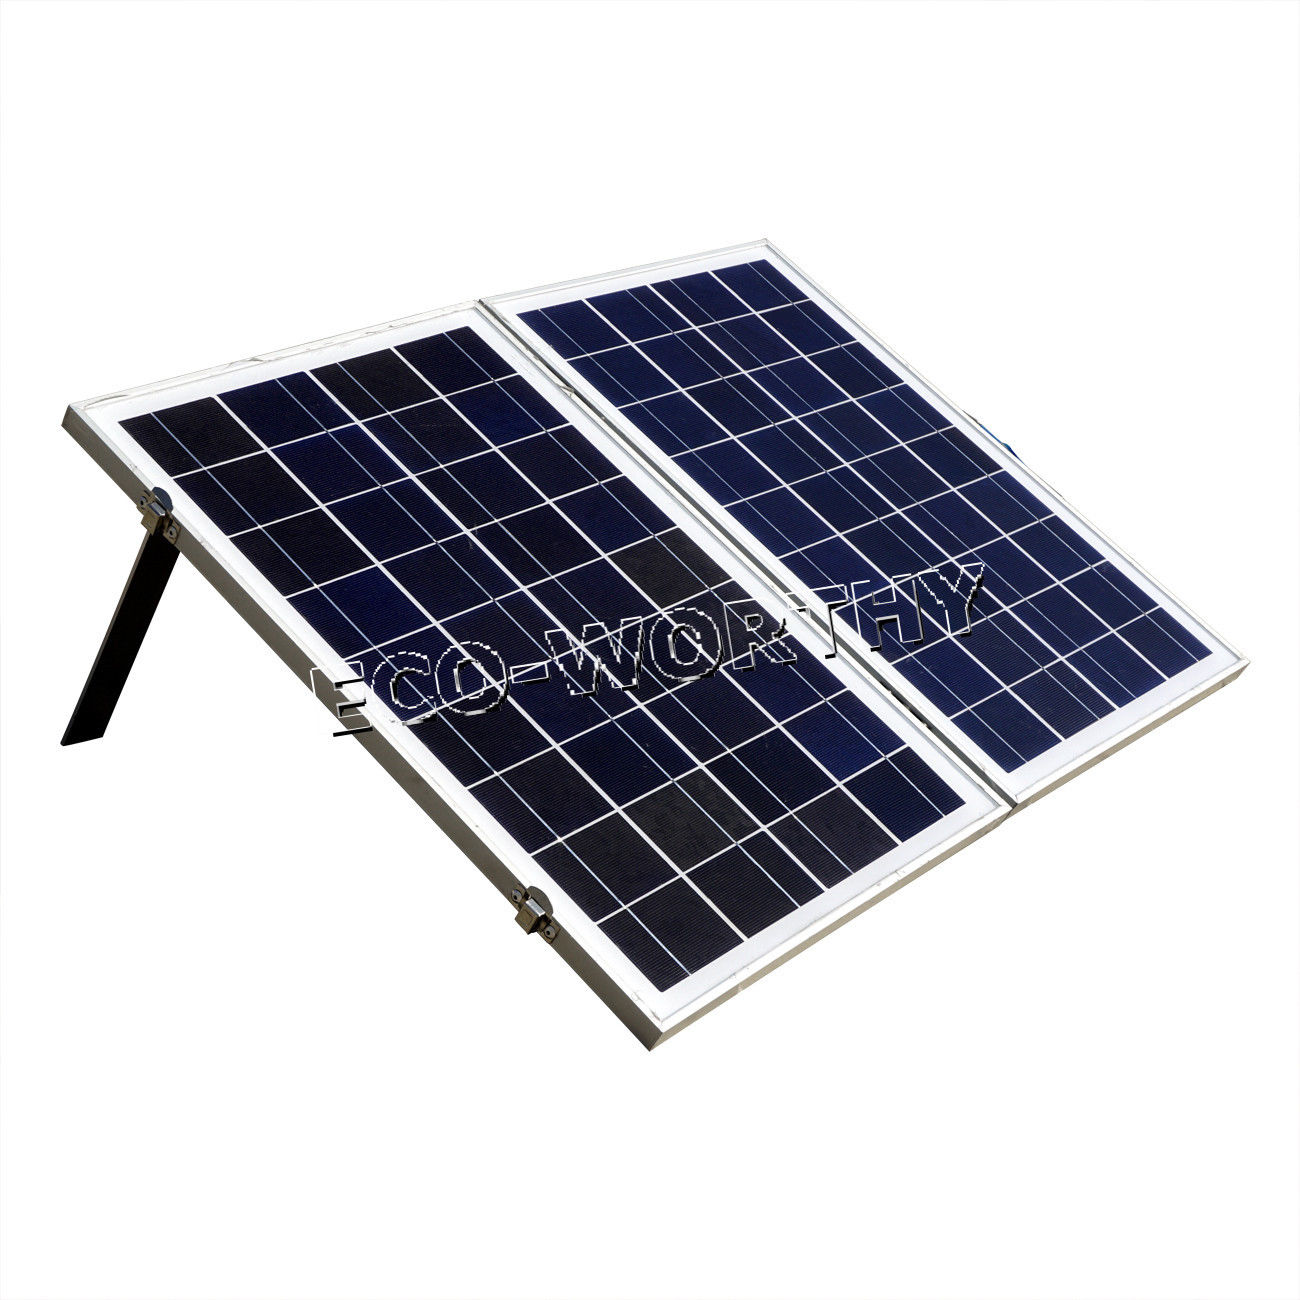 Eco-worthy 50W Foldable Folding Poly Solar Panel Portable Complete Kit for 12V Camping Boat RV portable outdoor 18v 30w portable smart solar power panel car rv boat battery bank charger universal w clip outdoor tool camping